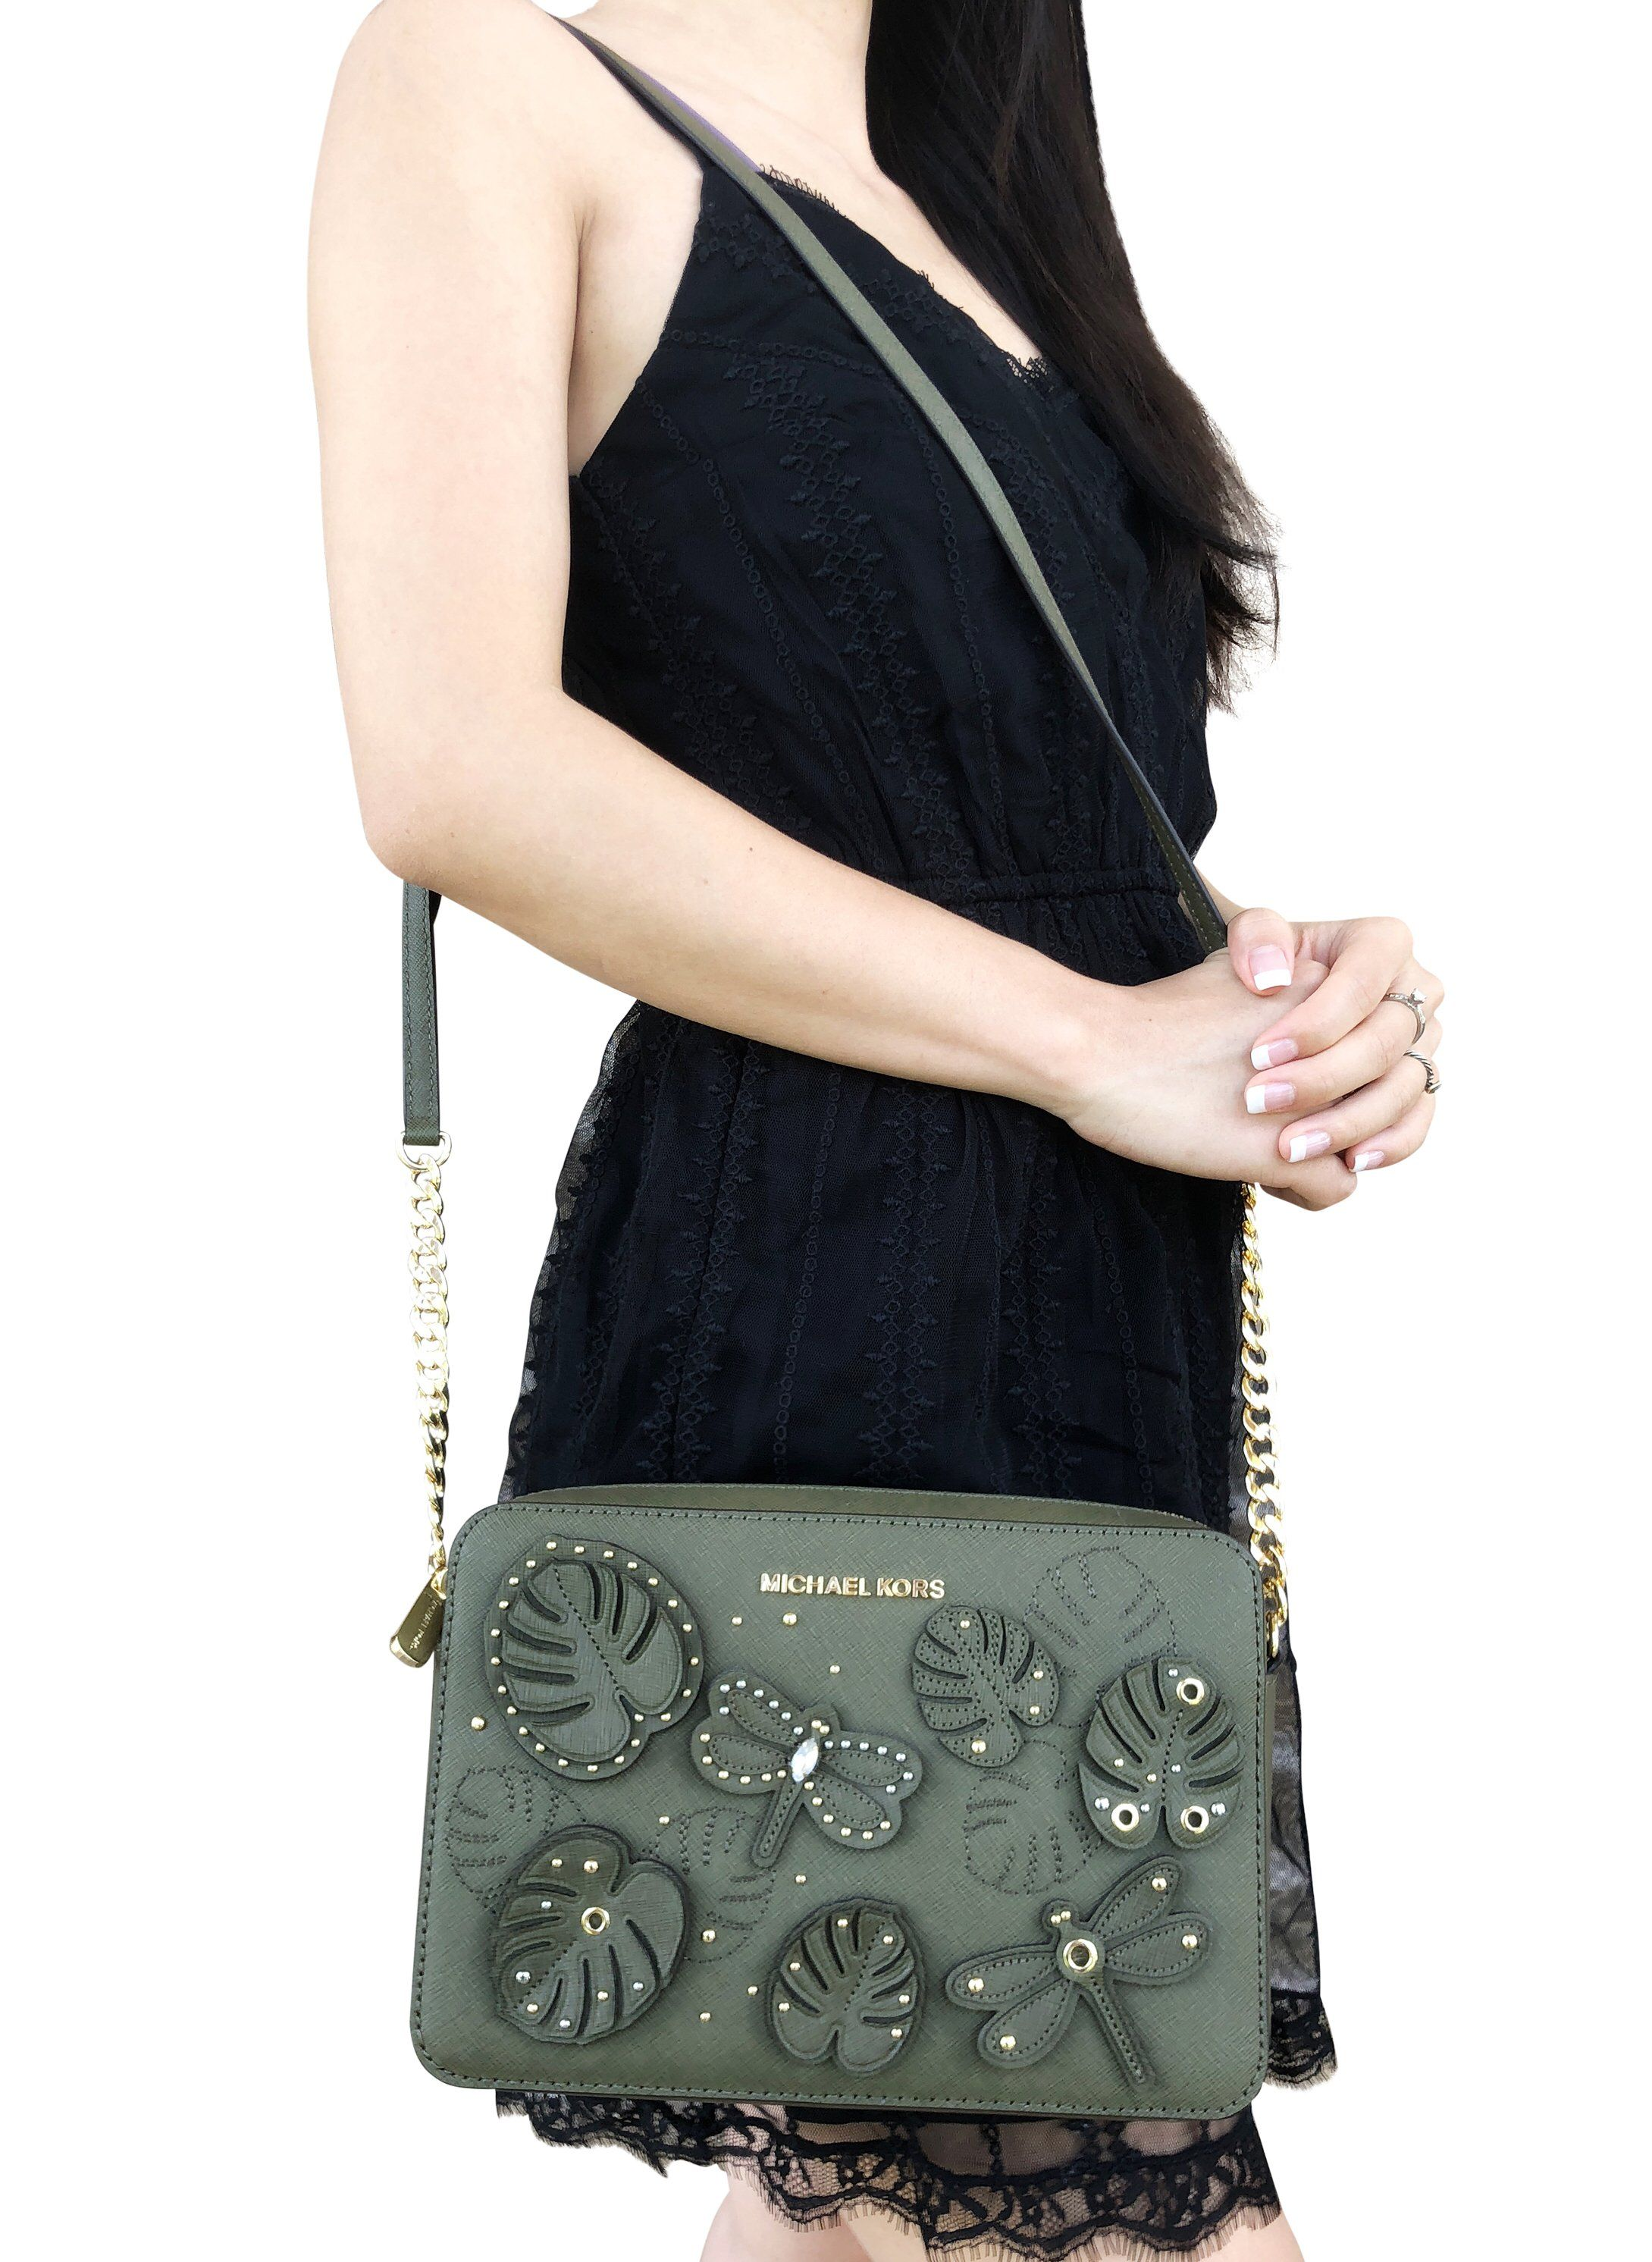 19912a6fd73e Michael Kors Jet Set Large East West Crossbody Bag Olive Floral  MK   Handbags  MichaelKors